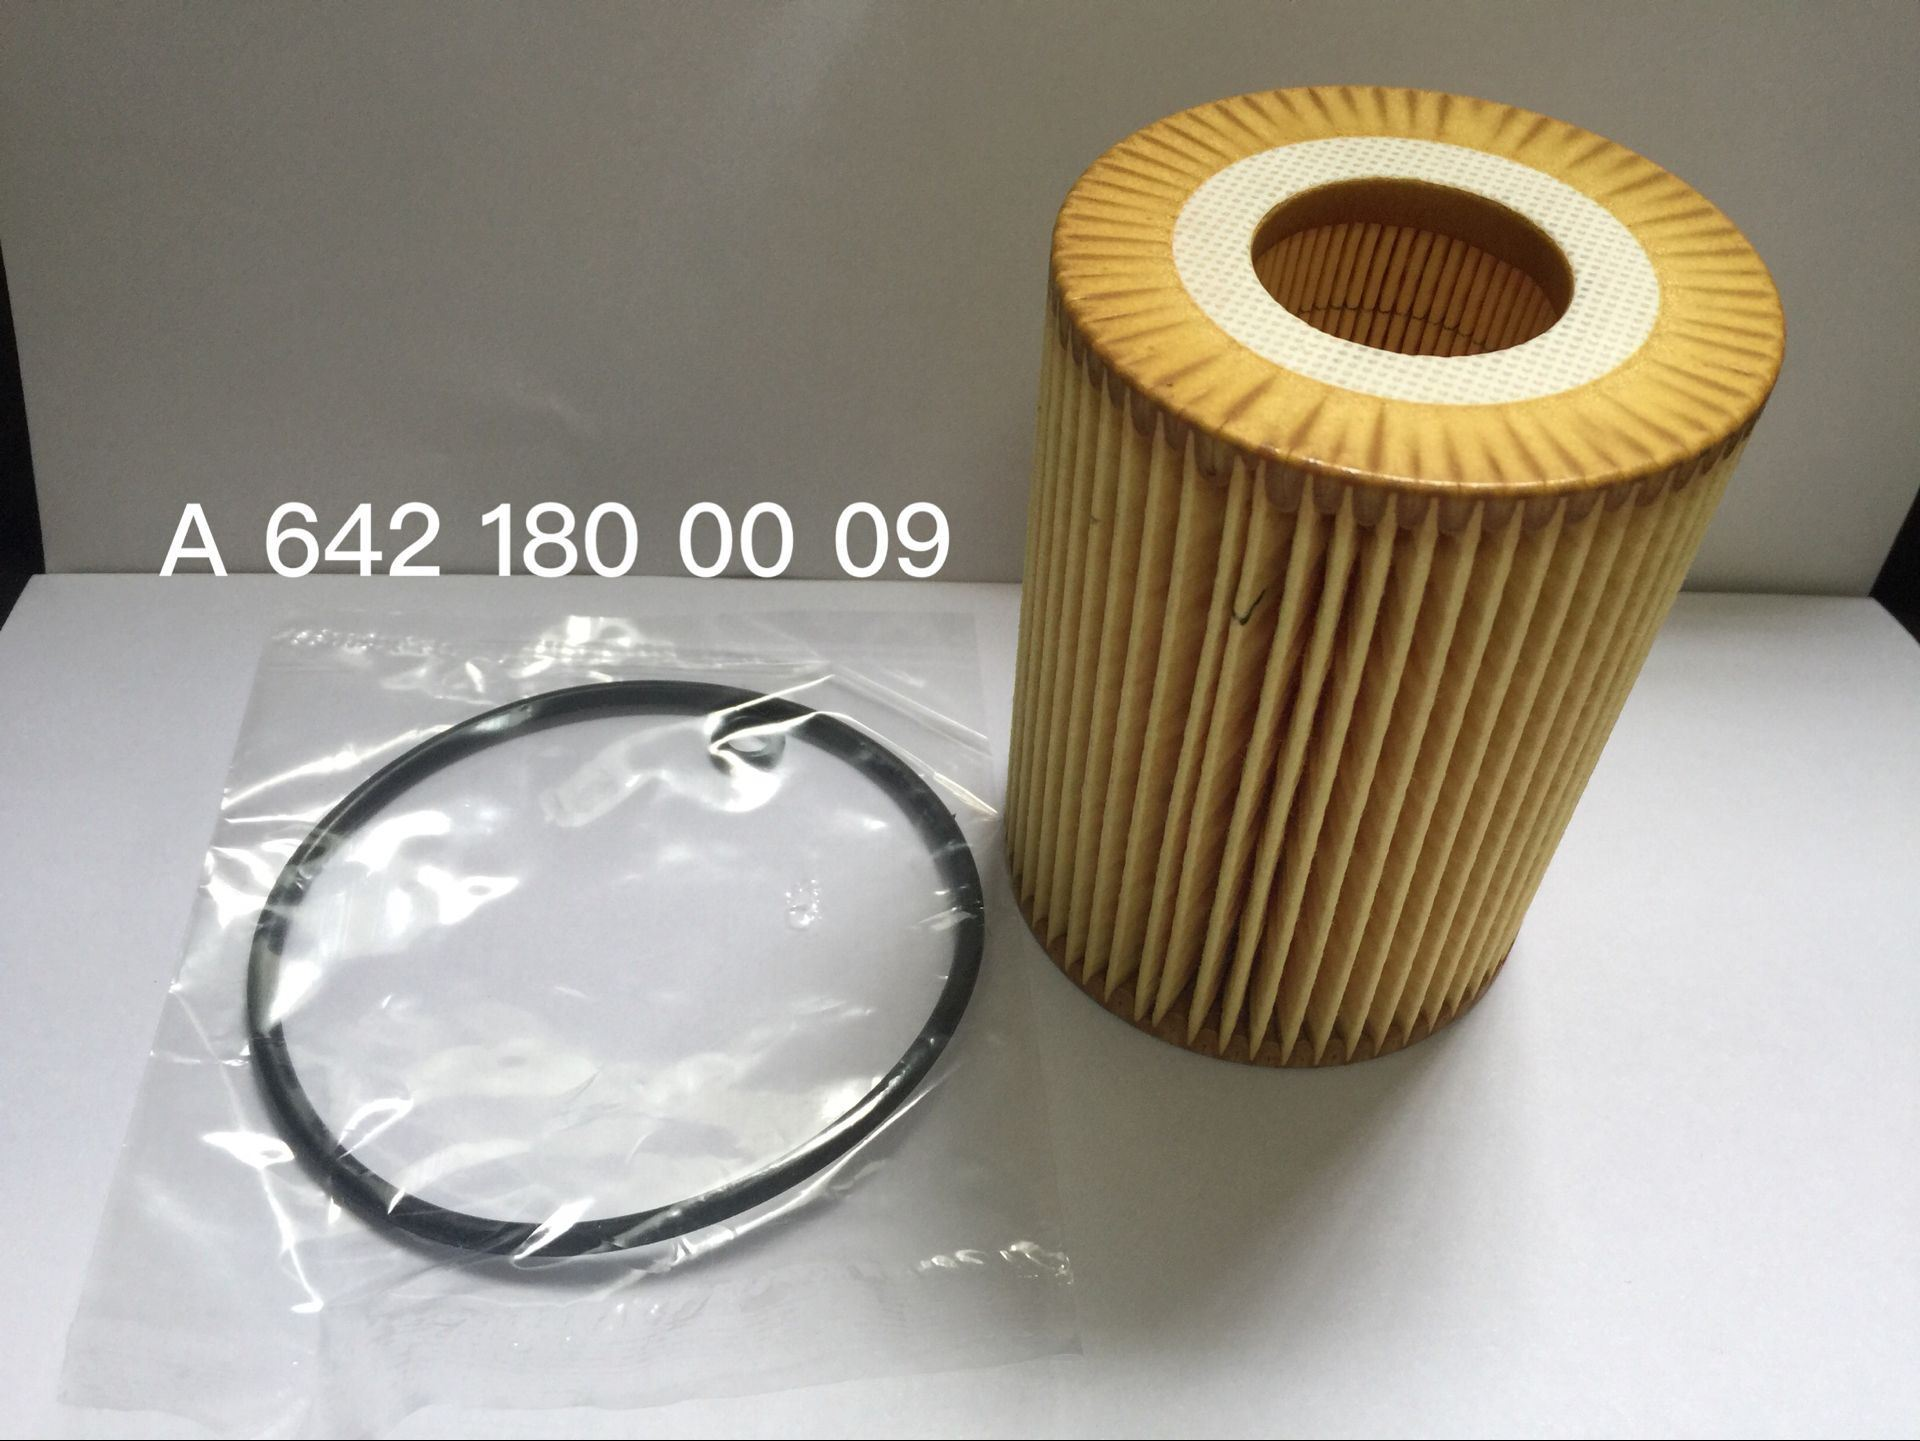 Oil Filter for Mercedes-Benz 642 180 00 09